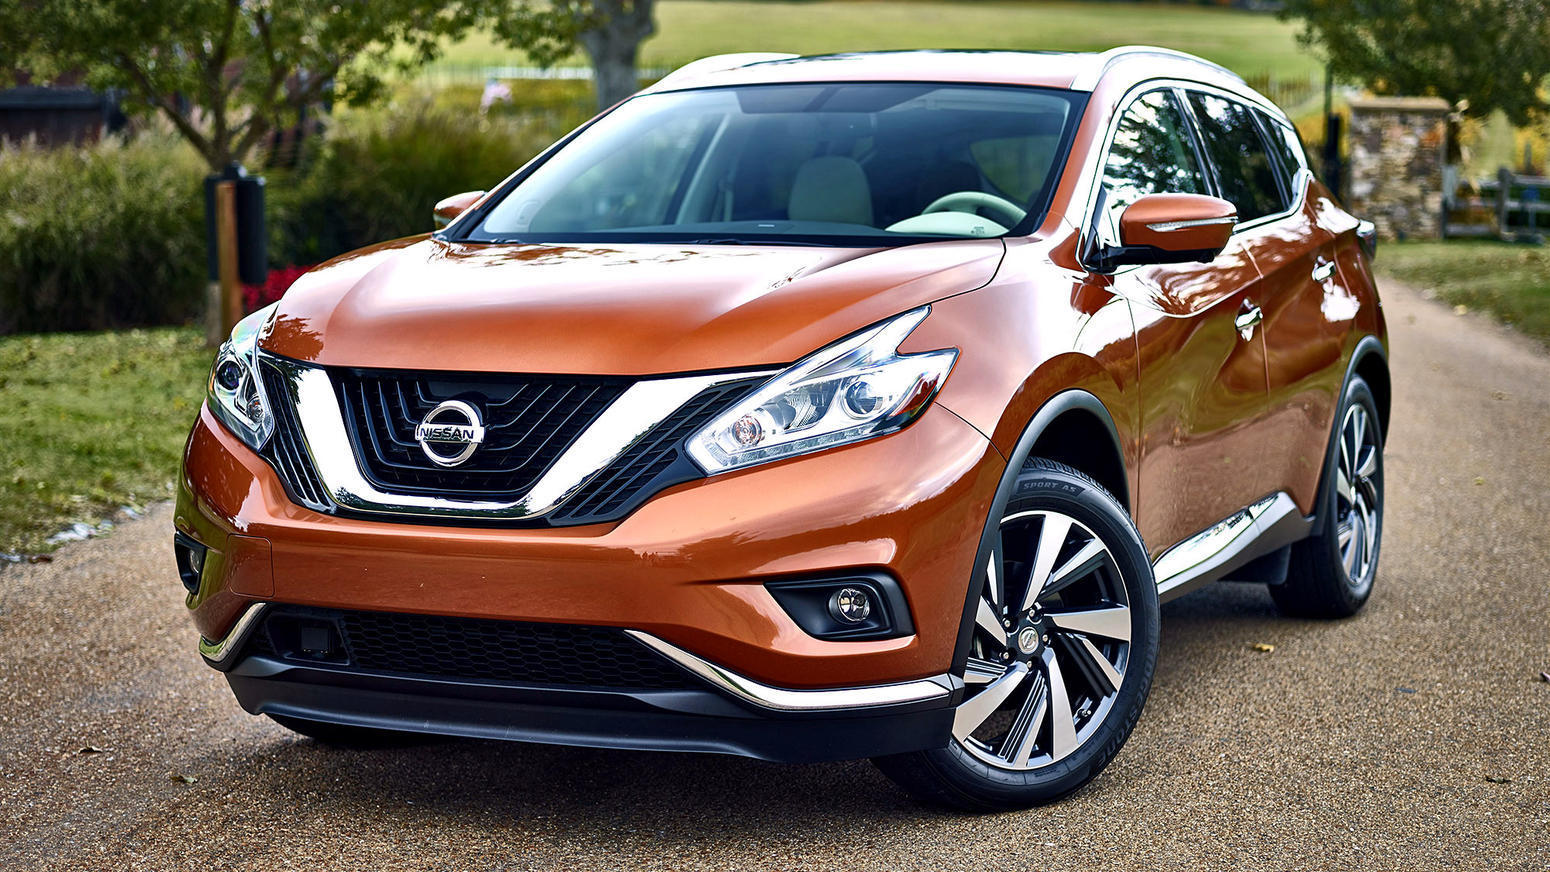 Burnt Orange Nissan Murano